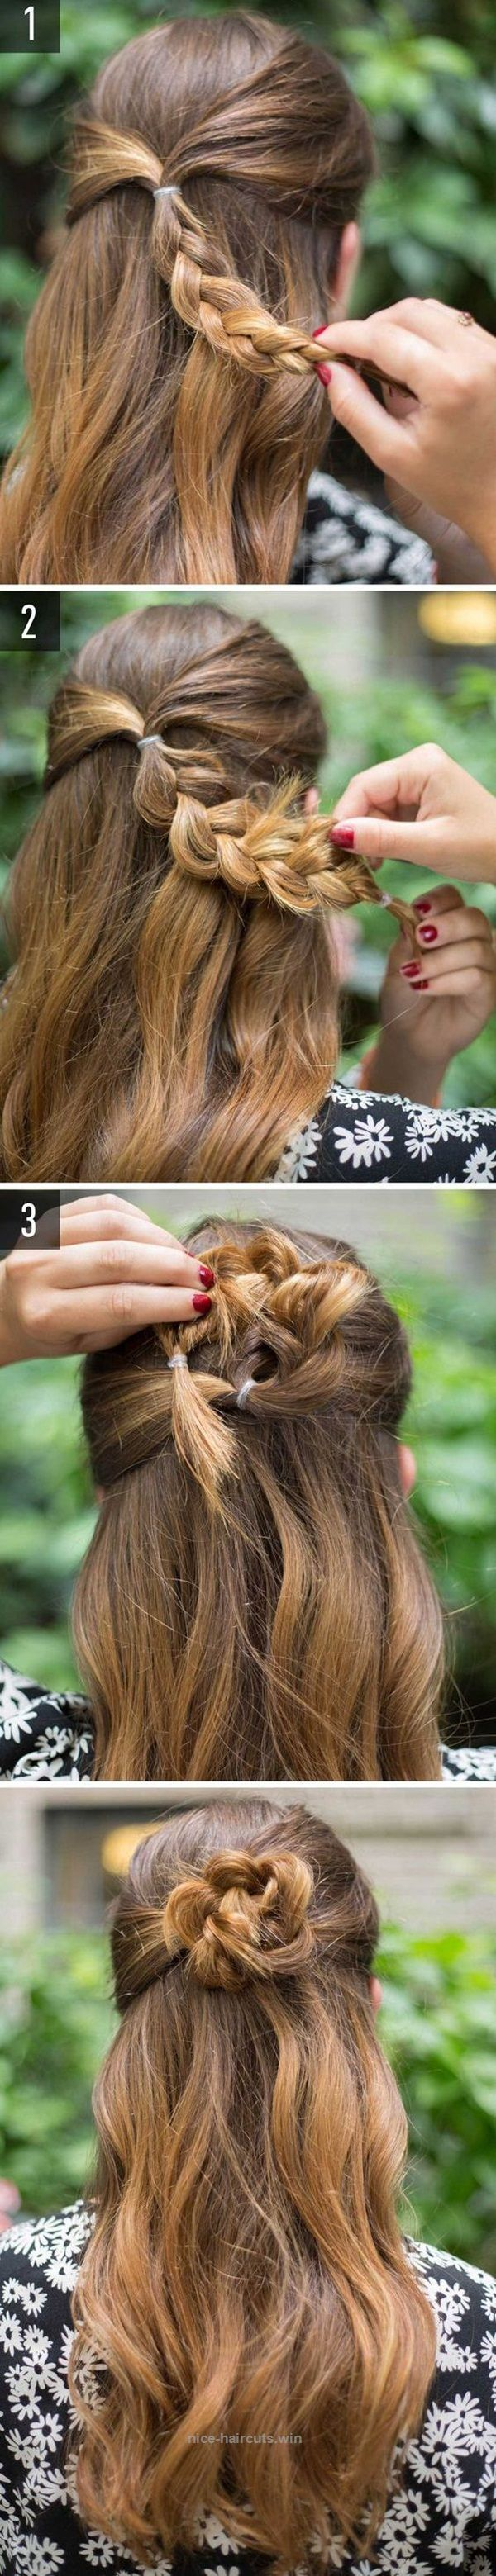 Superb 40 Easy Hairstyles for Schools to Try in 2017. Quick, Easy, Cute and Simple Step By Step Girls and Teens Hairstyles for Back to School. Great For Medium Hair, Short ..